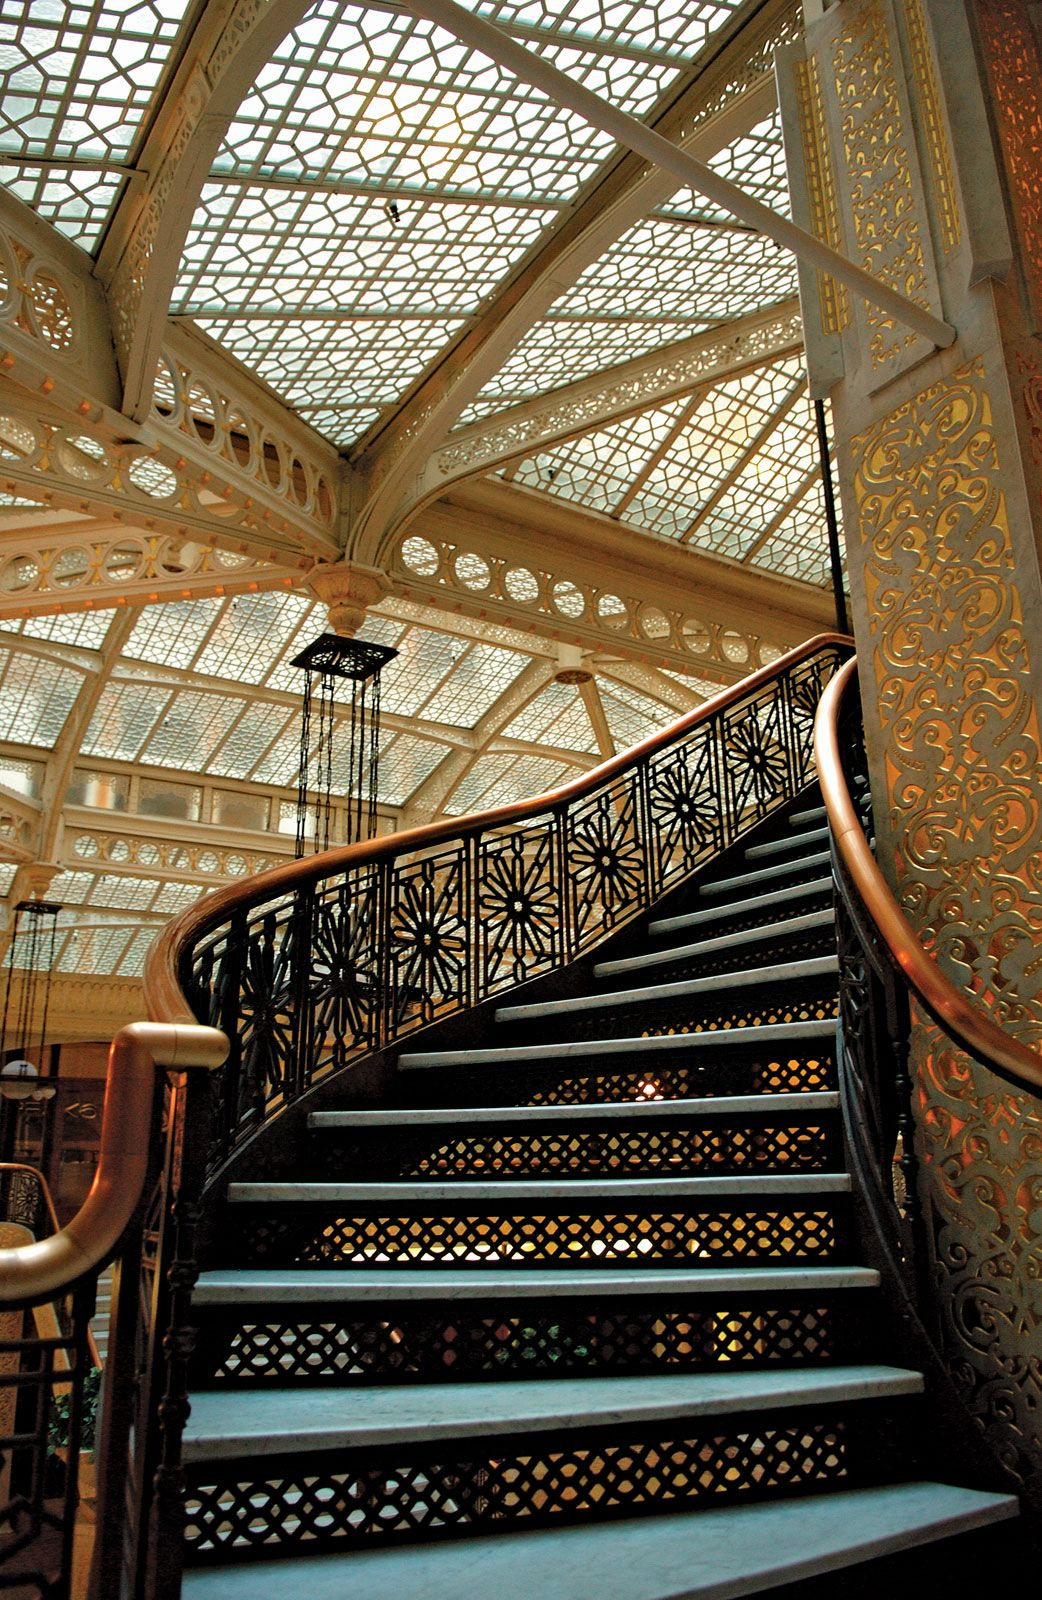 Staircase Inside The Rookery BUilding In Chicago Illinois Frank Lloyd Wright Is Architect